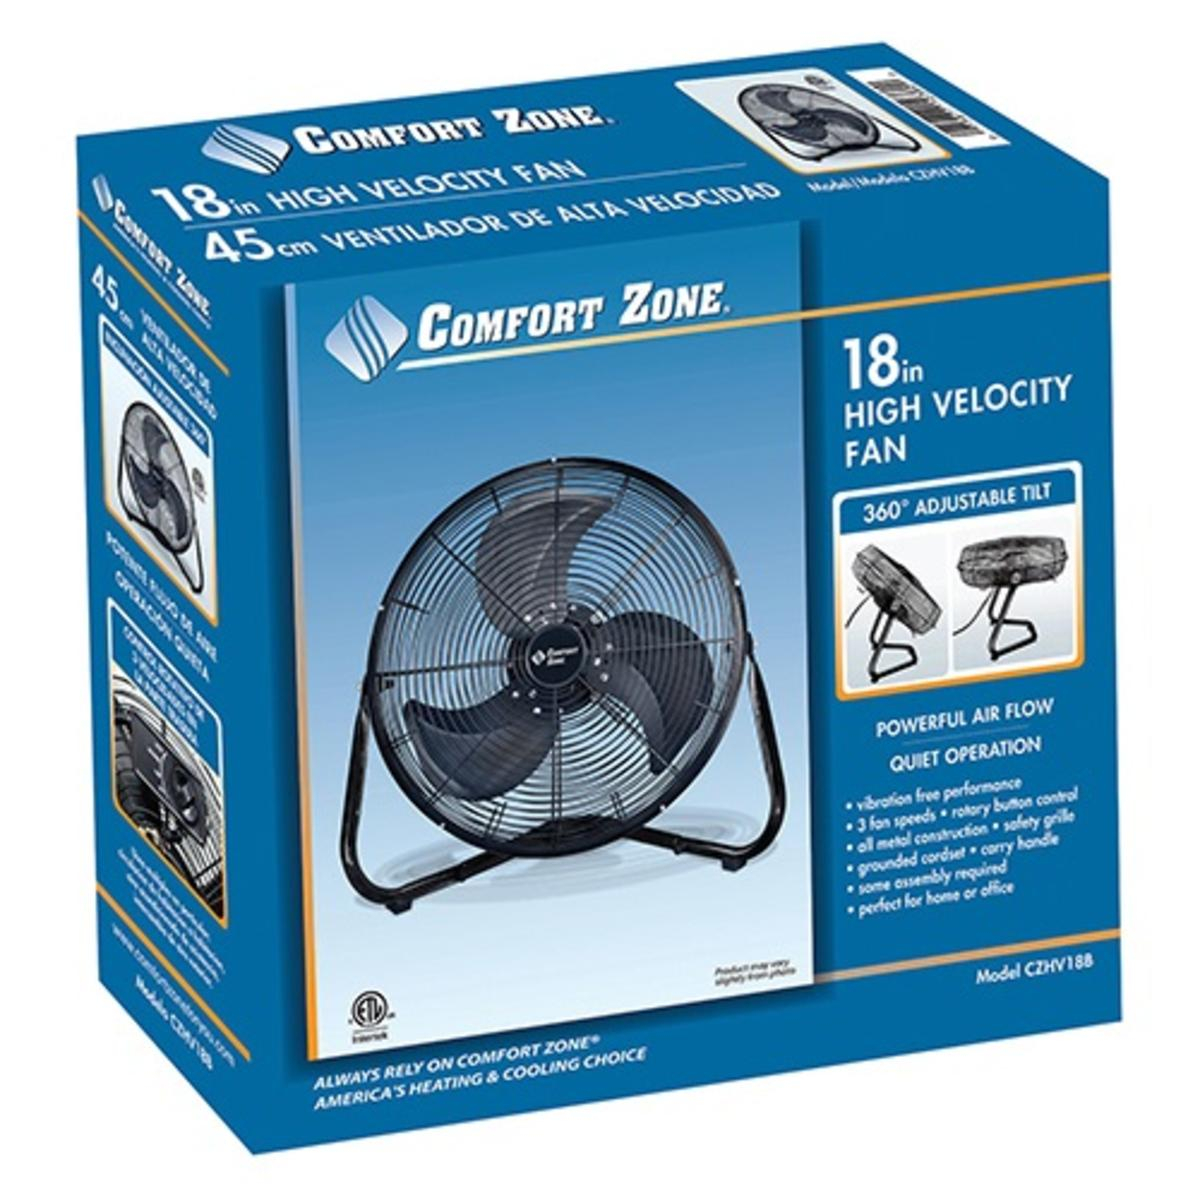 Comfort Zone 18 Inch High Velocity Cradle Fan with sizing 1200 X 1200